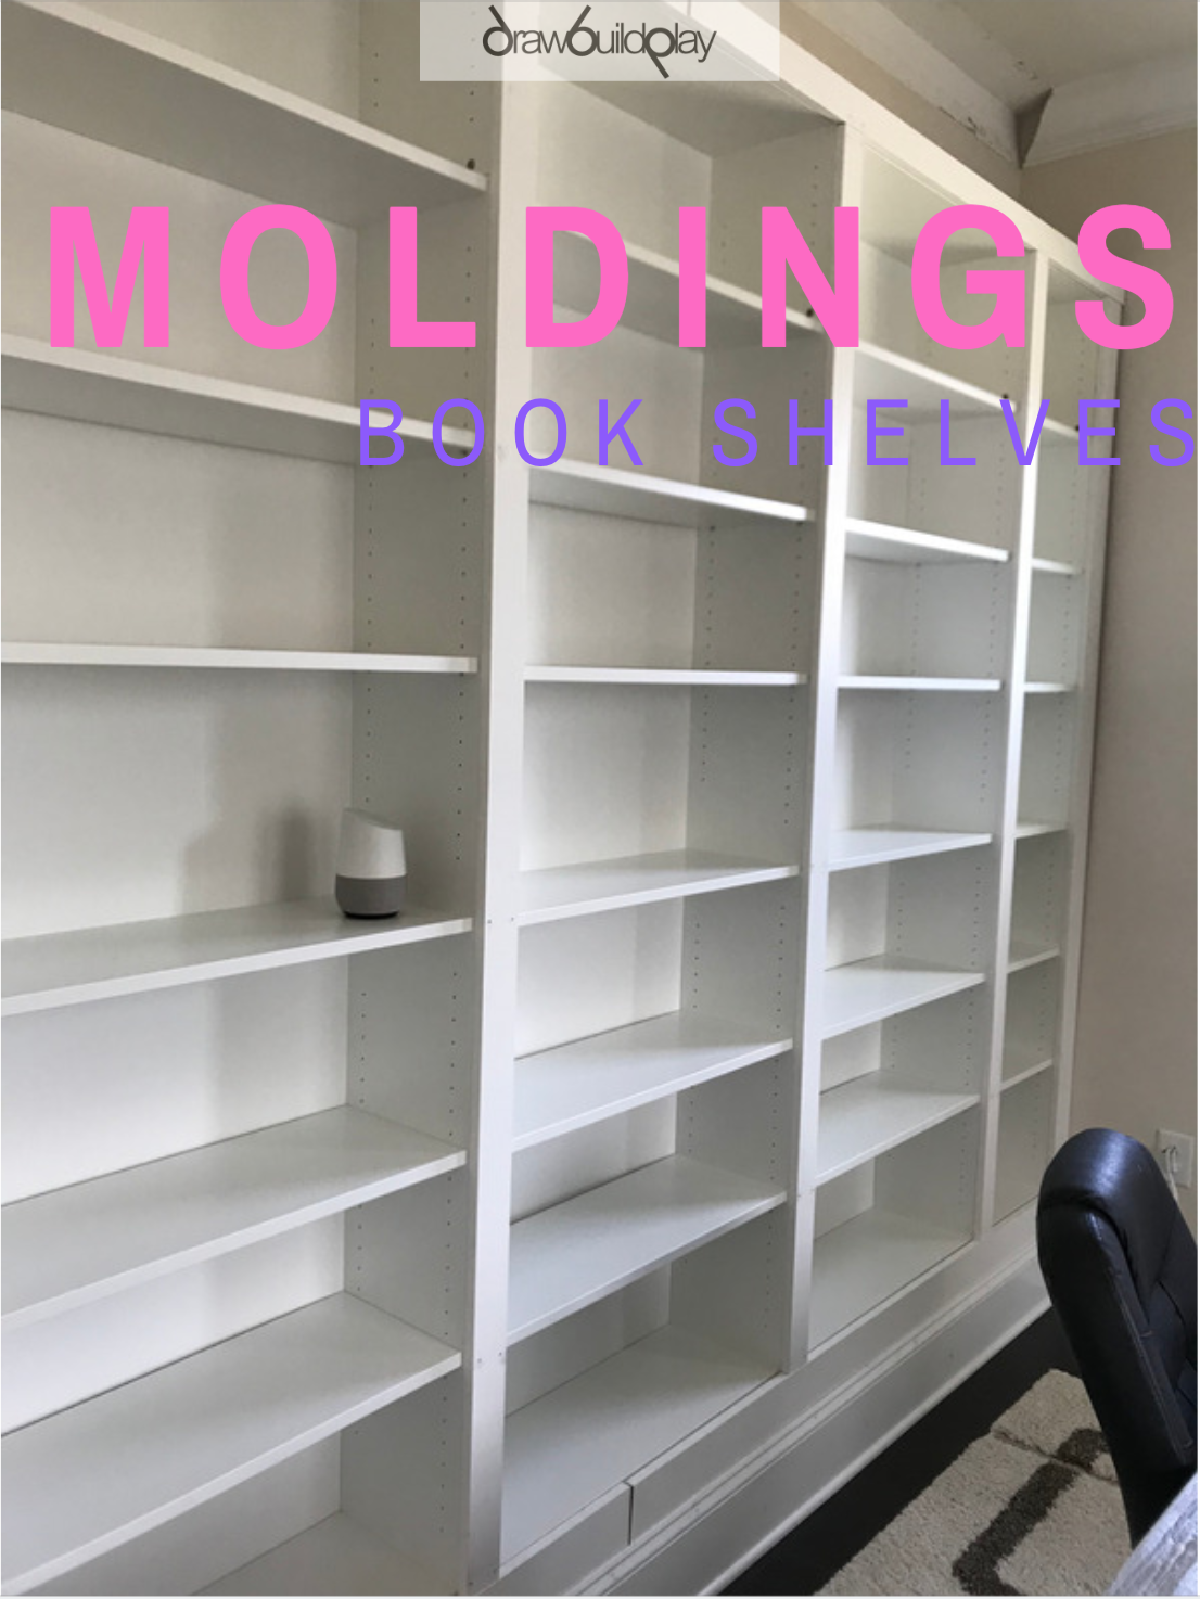 Book Shelf Molding / Trim